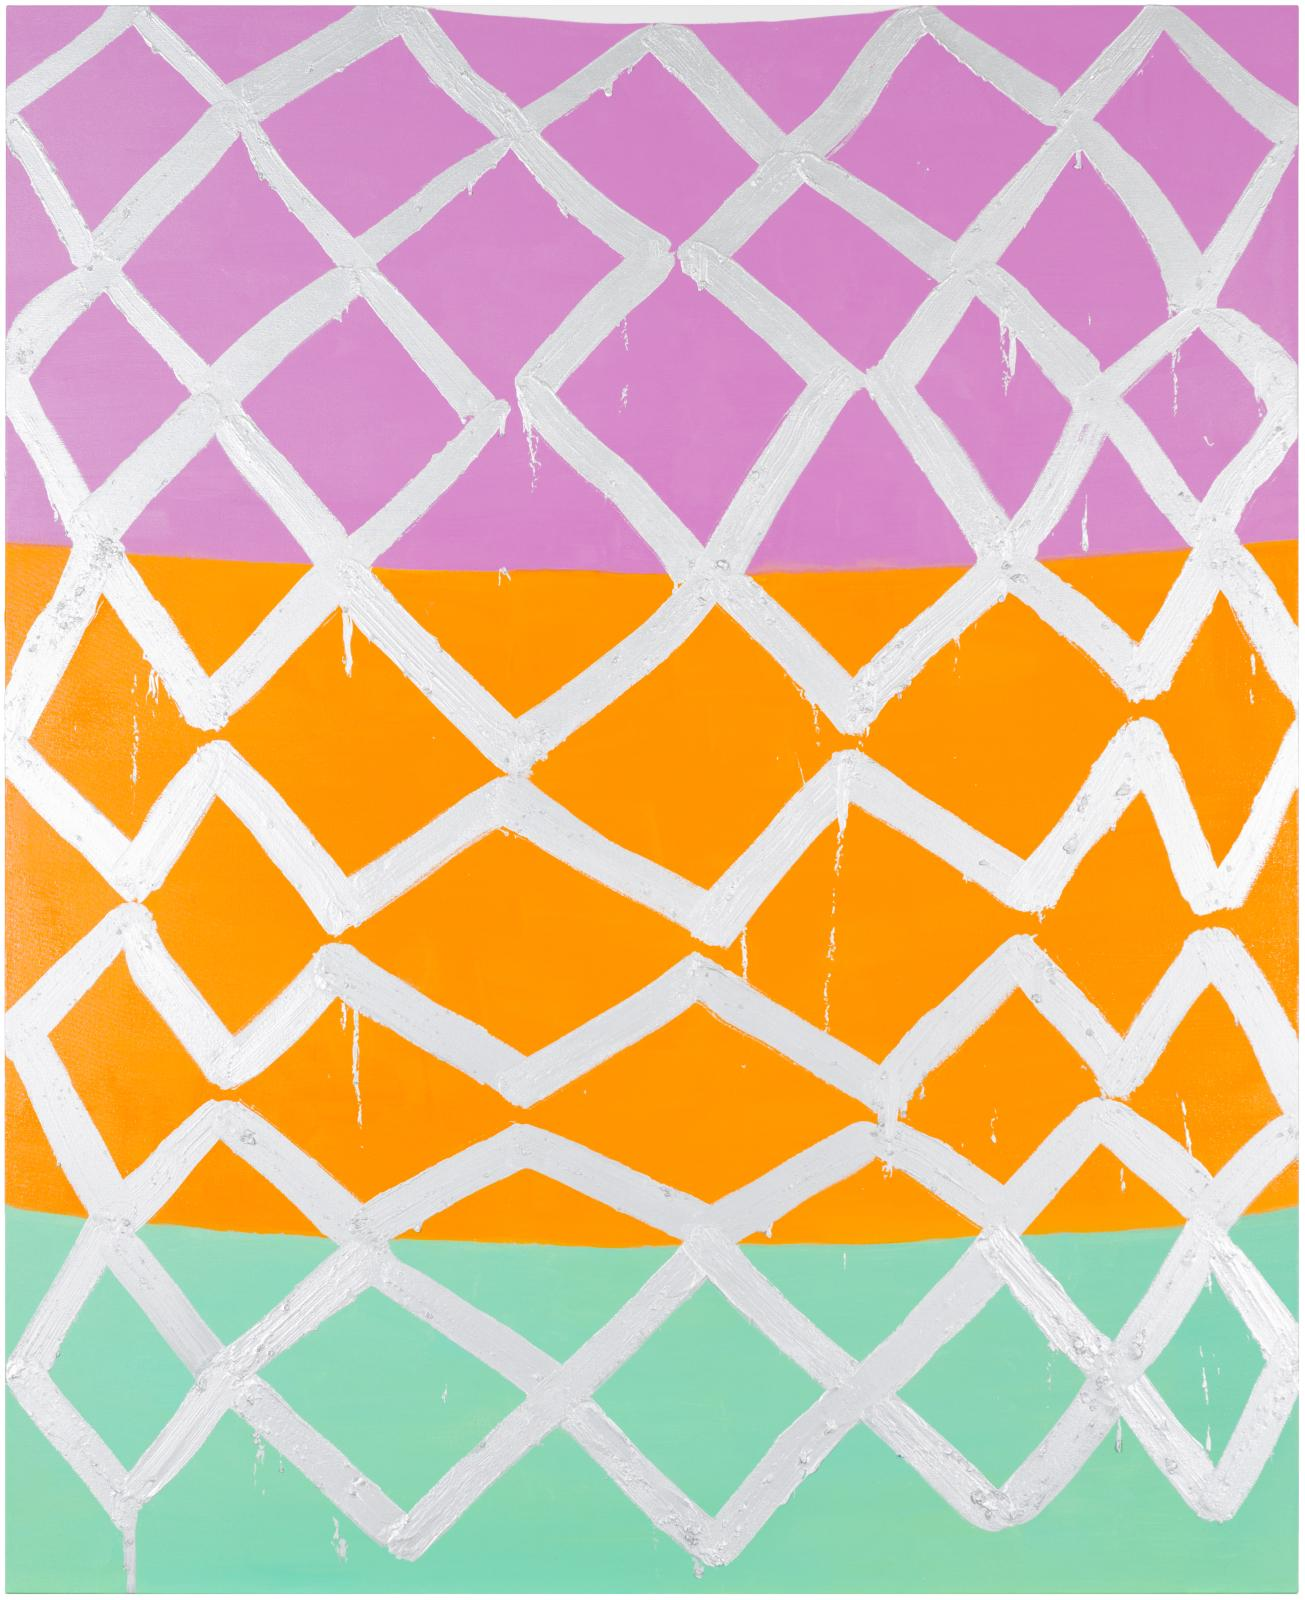 An irregular zigzagging grid of thick silver brushstrokes overlaps three broad planes of color, vertically stacked from top to bottom: light pink-purple, tangerine orange, and teal.